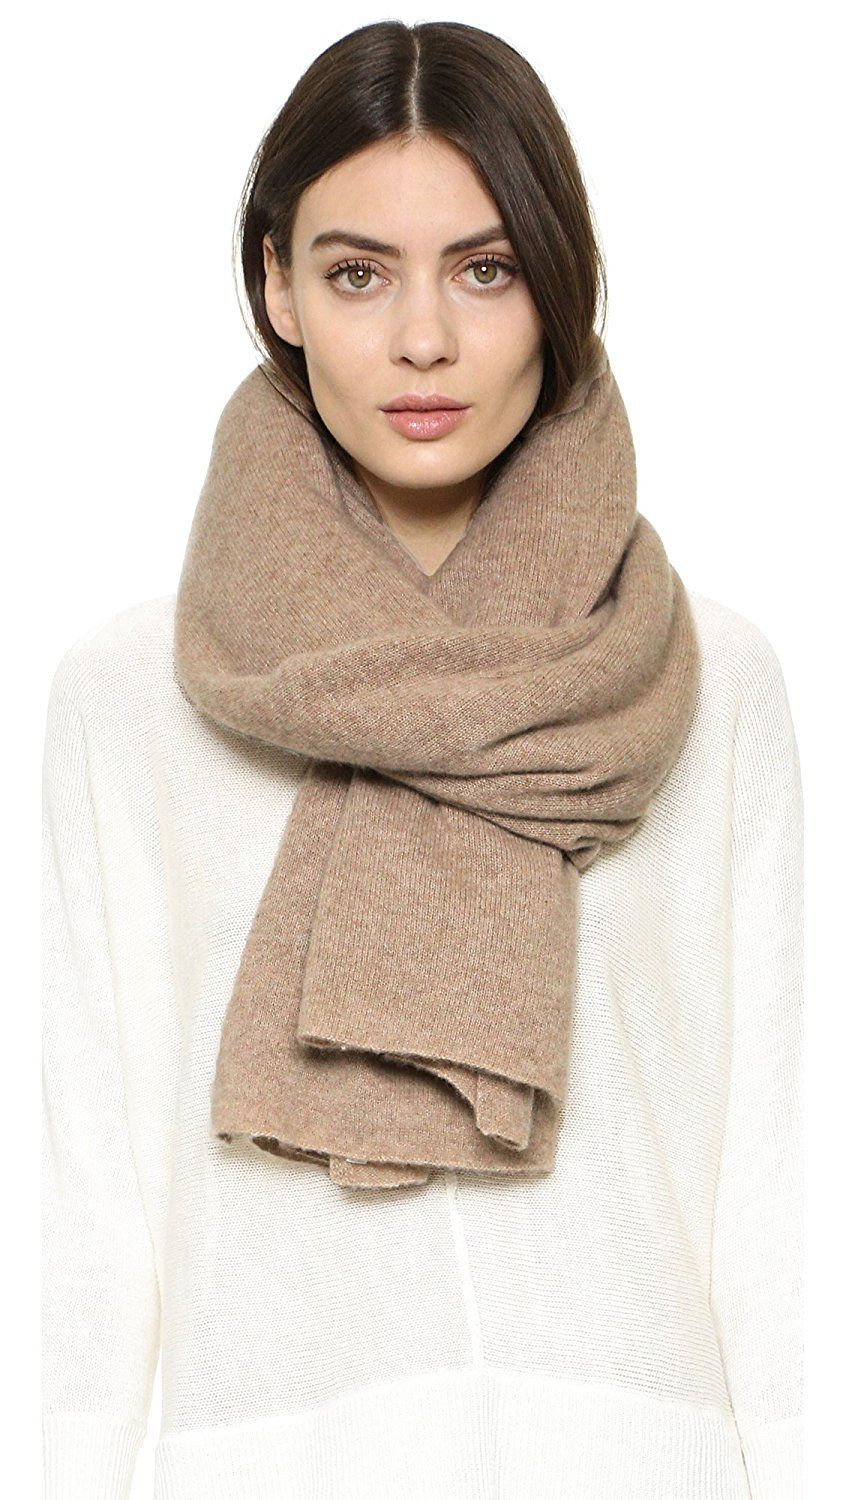 f6d4ab44dfc5b White Warren Women's Cashmere Travel Wrap Scarf *** Find out more details  by clicking the image : Best Travel accessories for women